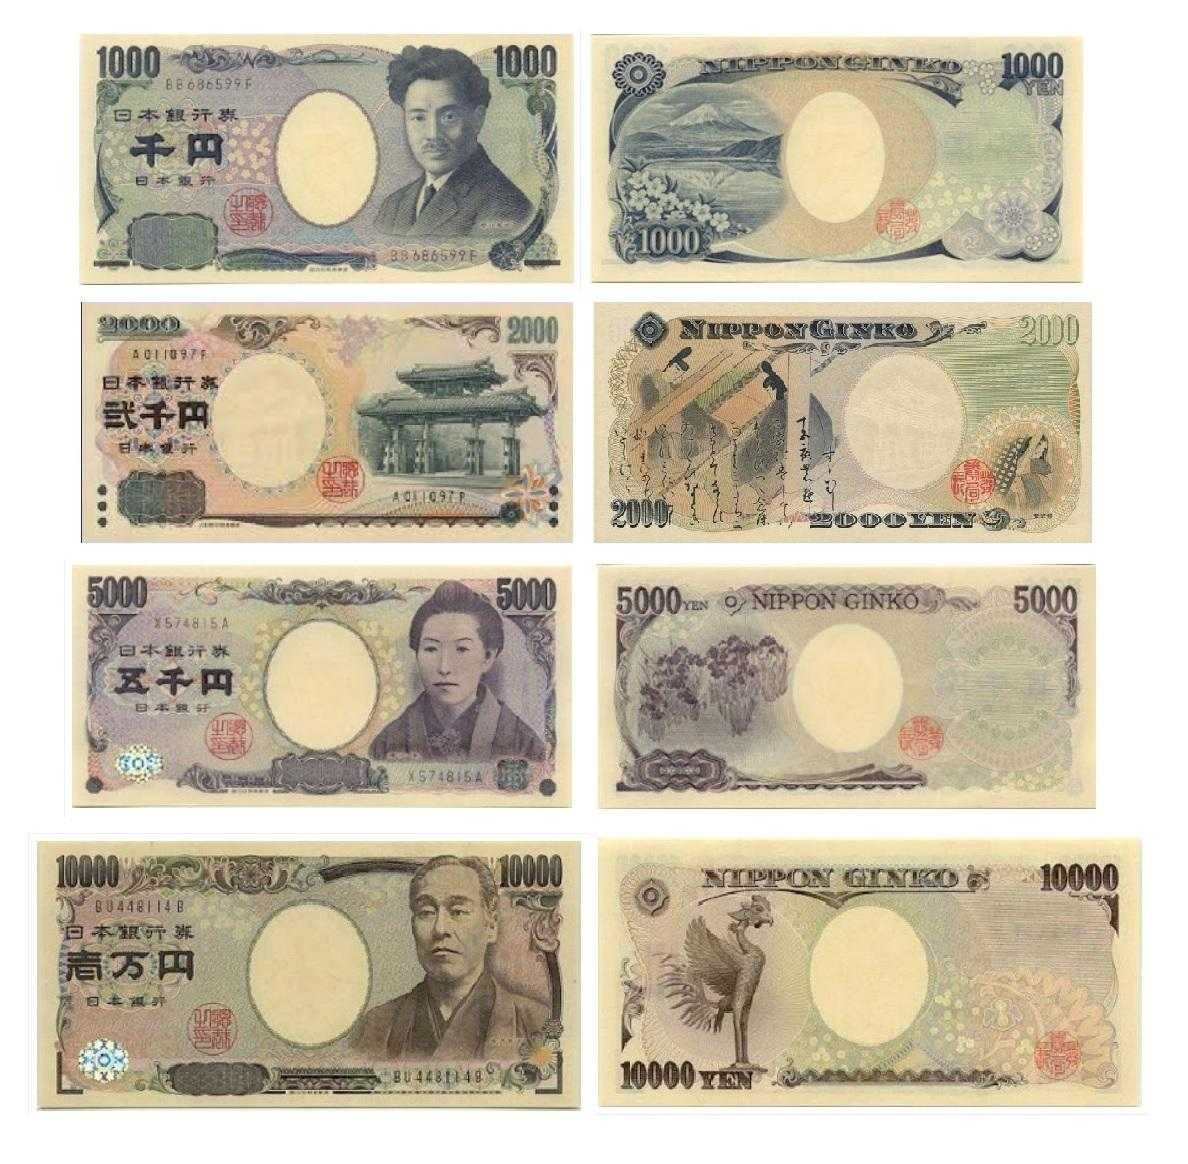 The Yen. Vola any japon